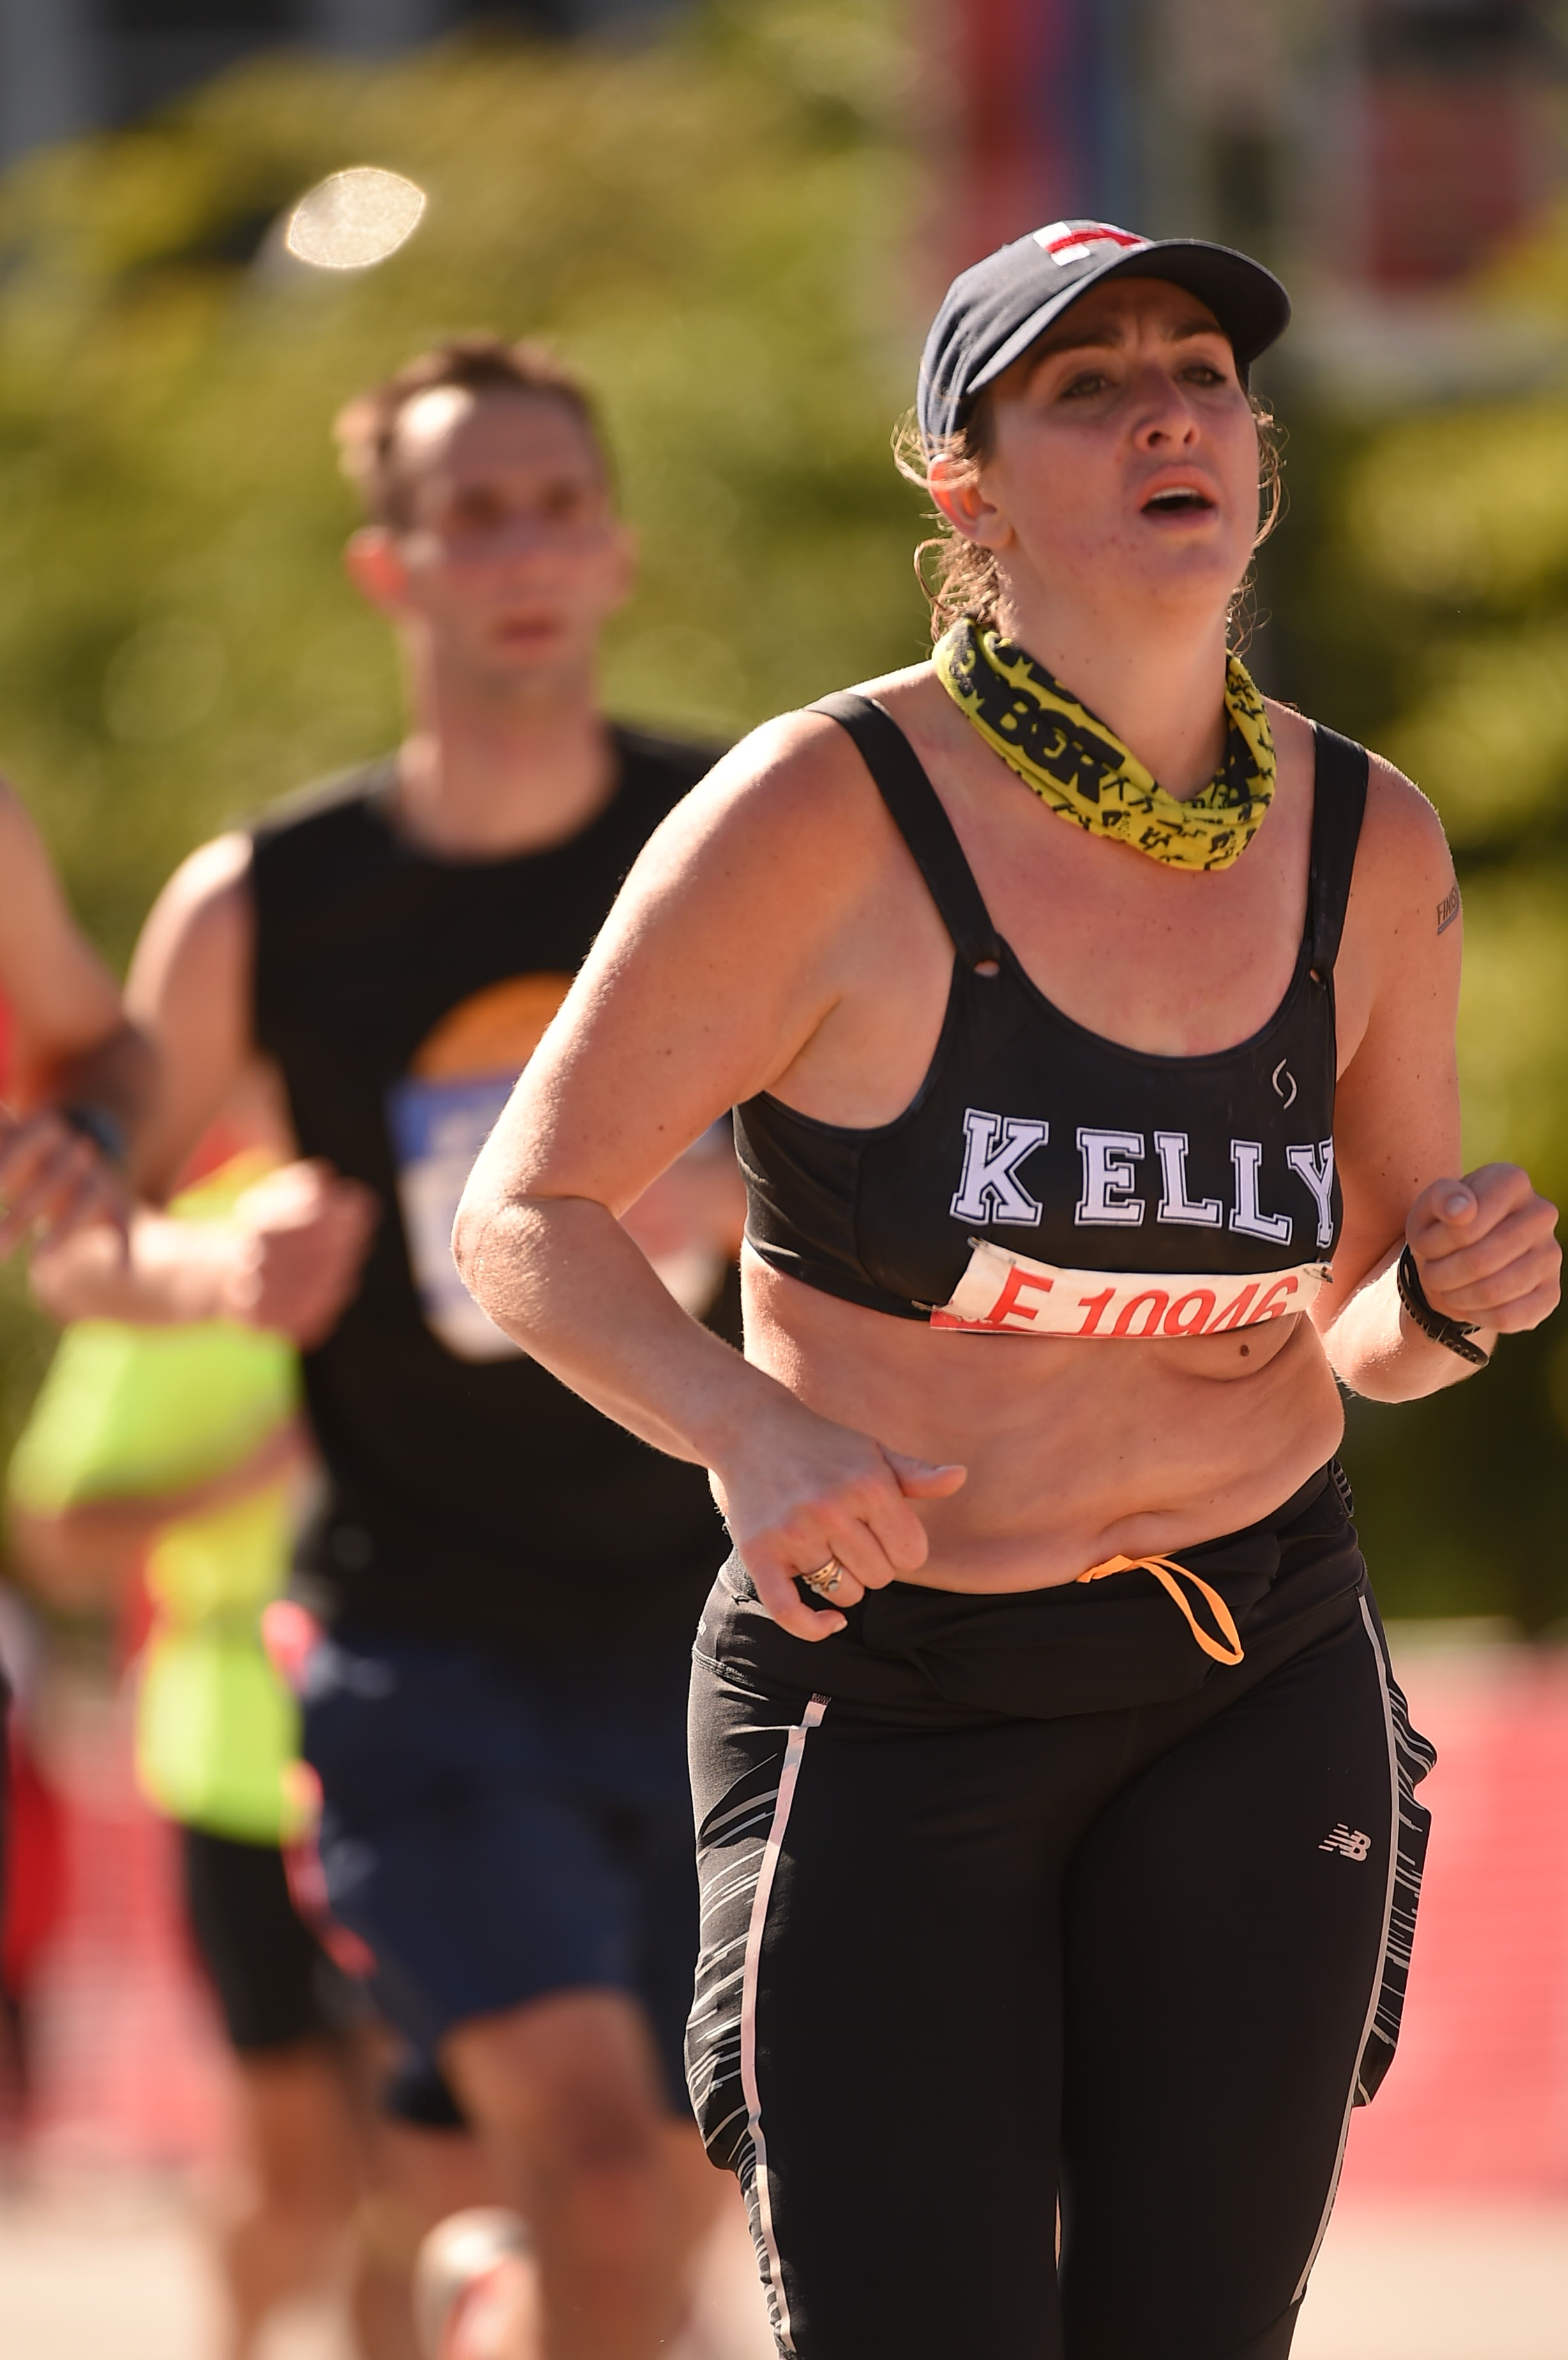 This is me, busting out a 7 minute 45 second mile for the final 1.2 miles of the Chicago Marathon where I finished in 3 hours and 42 minutes. I may not have a six pack, but I'm strong as f*ck. Stop cringing when you see your body. This picture makes me smile because it reminds me of how hard I worked. Proud is all I feel. And it took me years of hard work and positive self talk to get to this place.